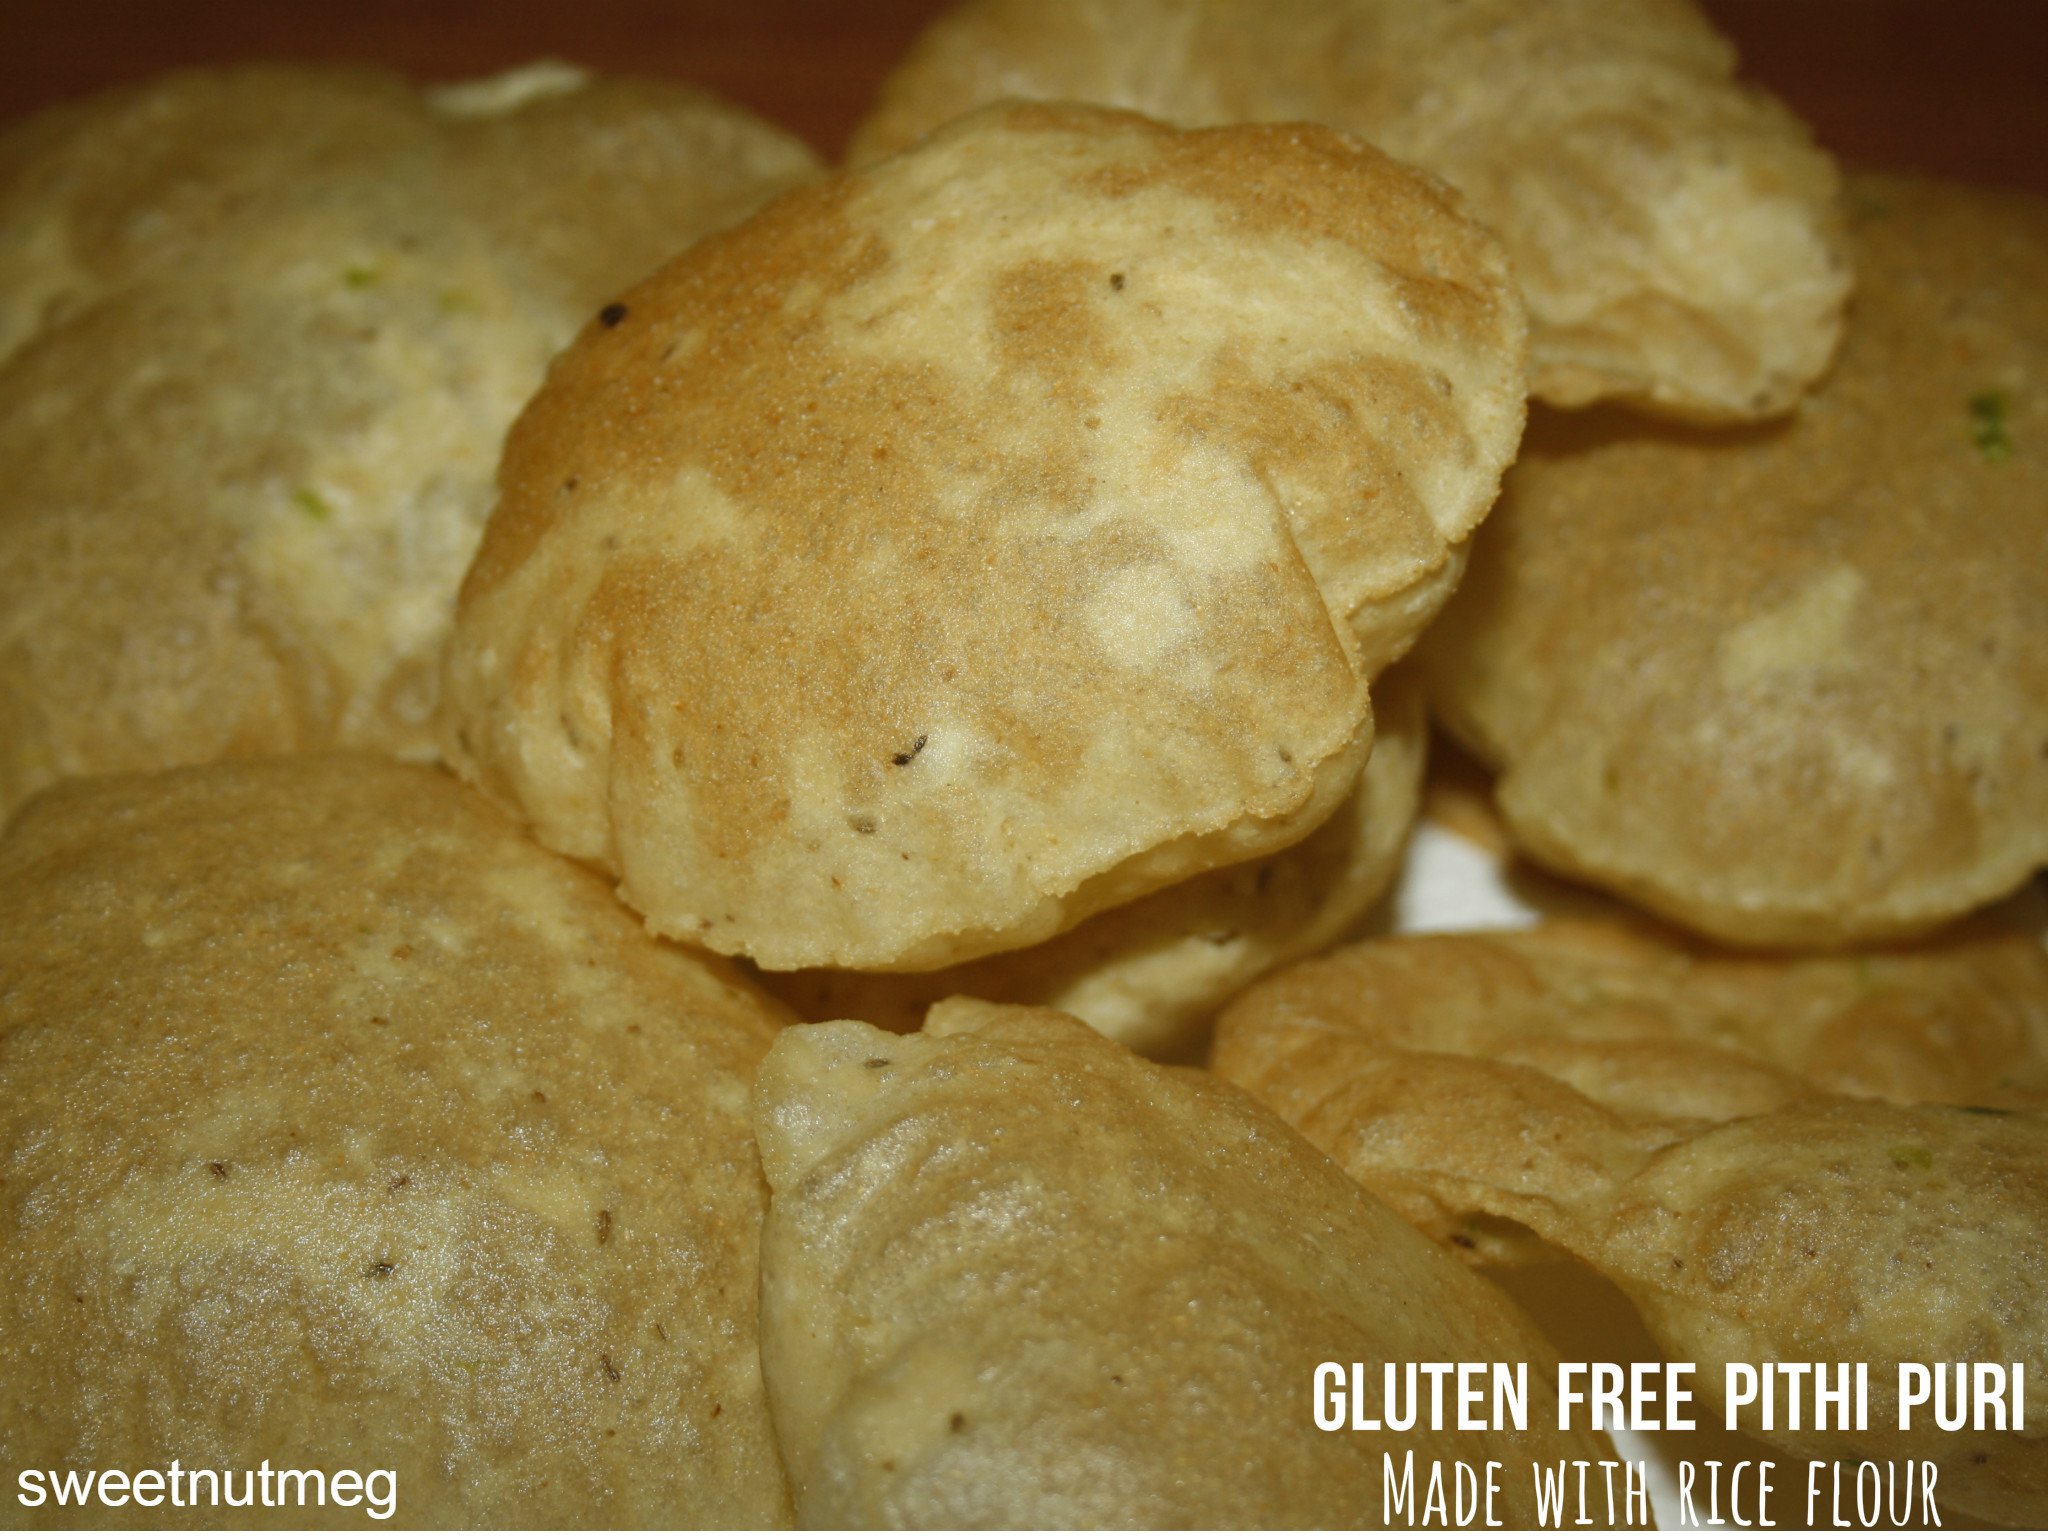 Gluten Free Indian Bread  Gluten Free Pithi Puri Another Indian Flat Bread